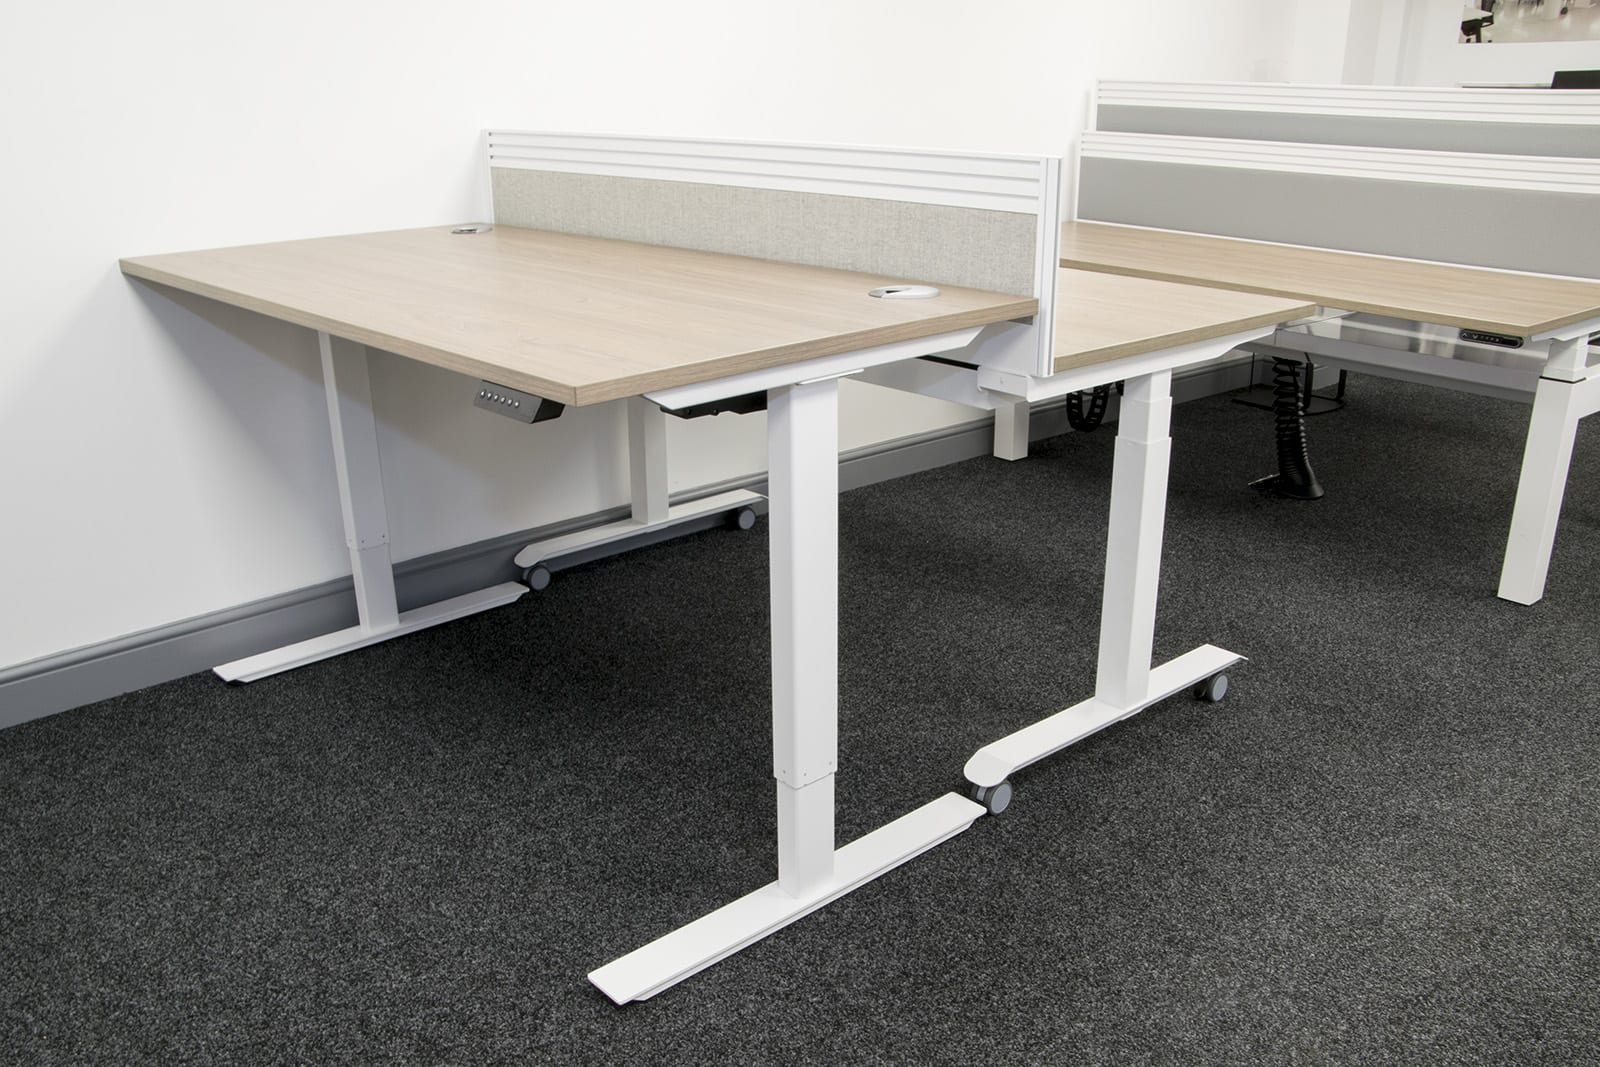 we bamboo height uplift homepage adjustable who desk at are an standing